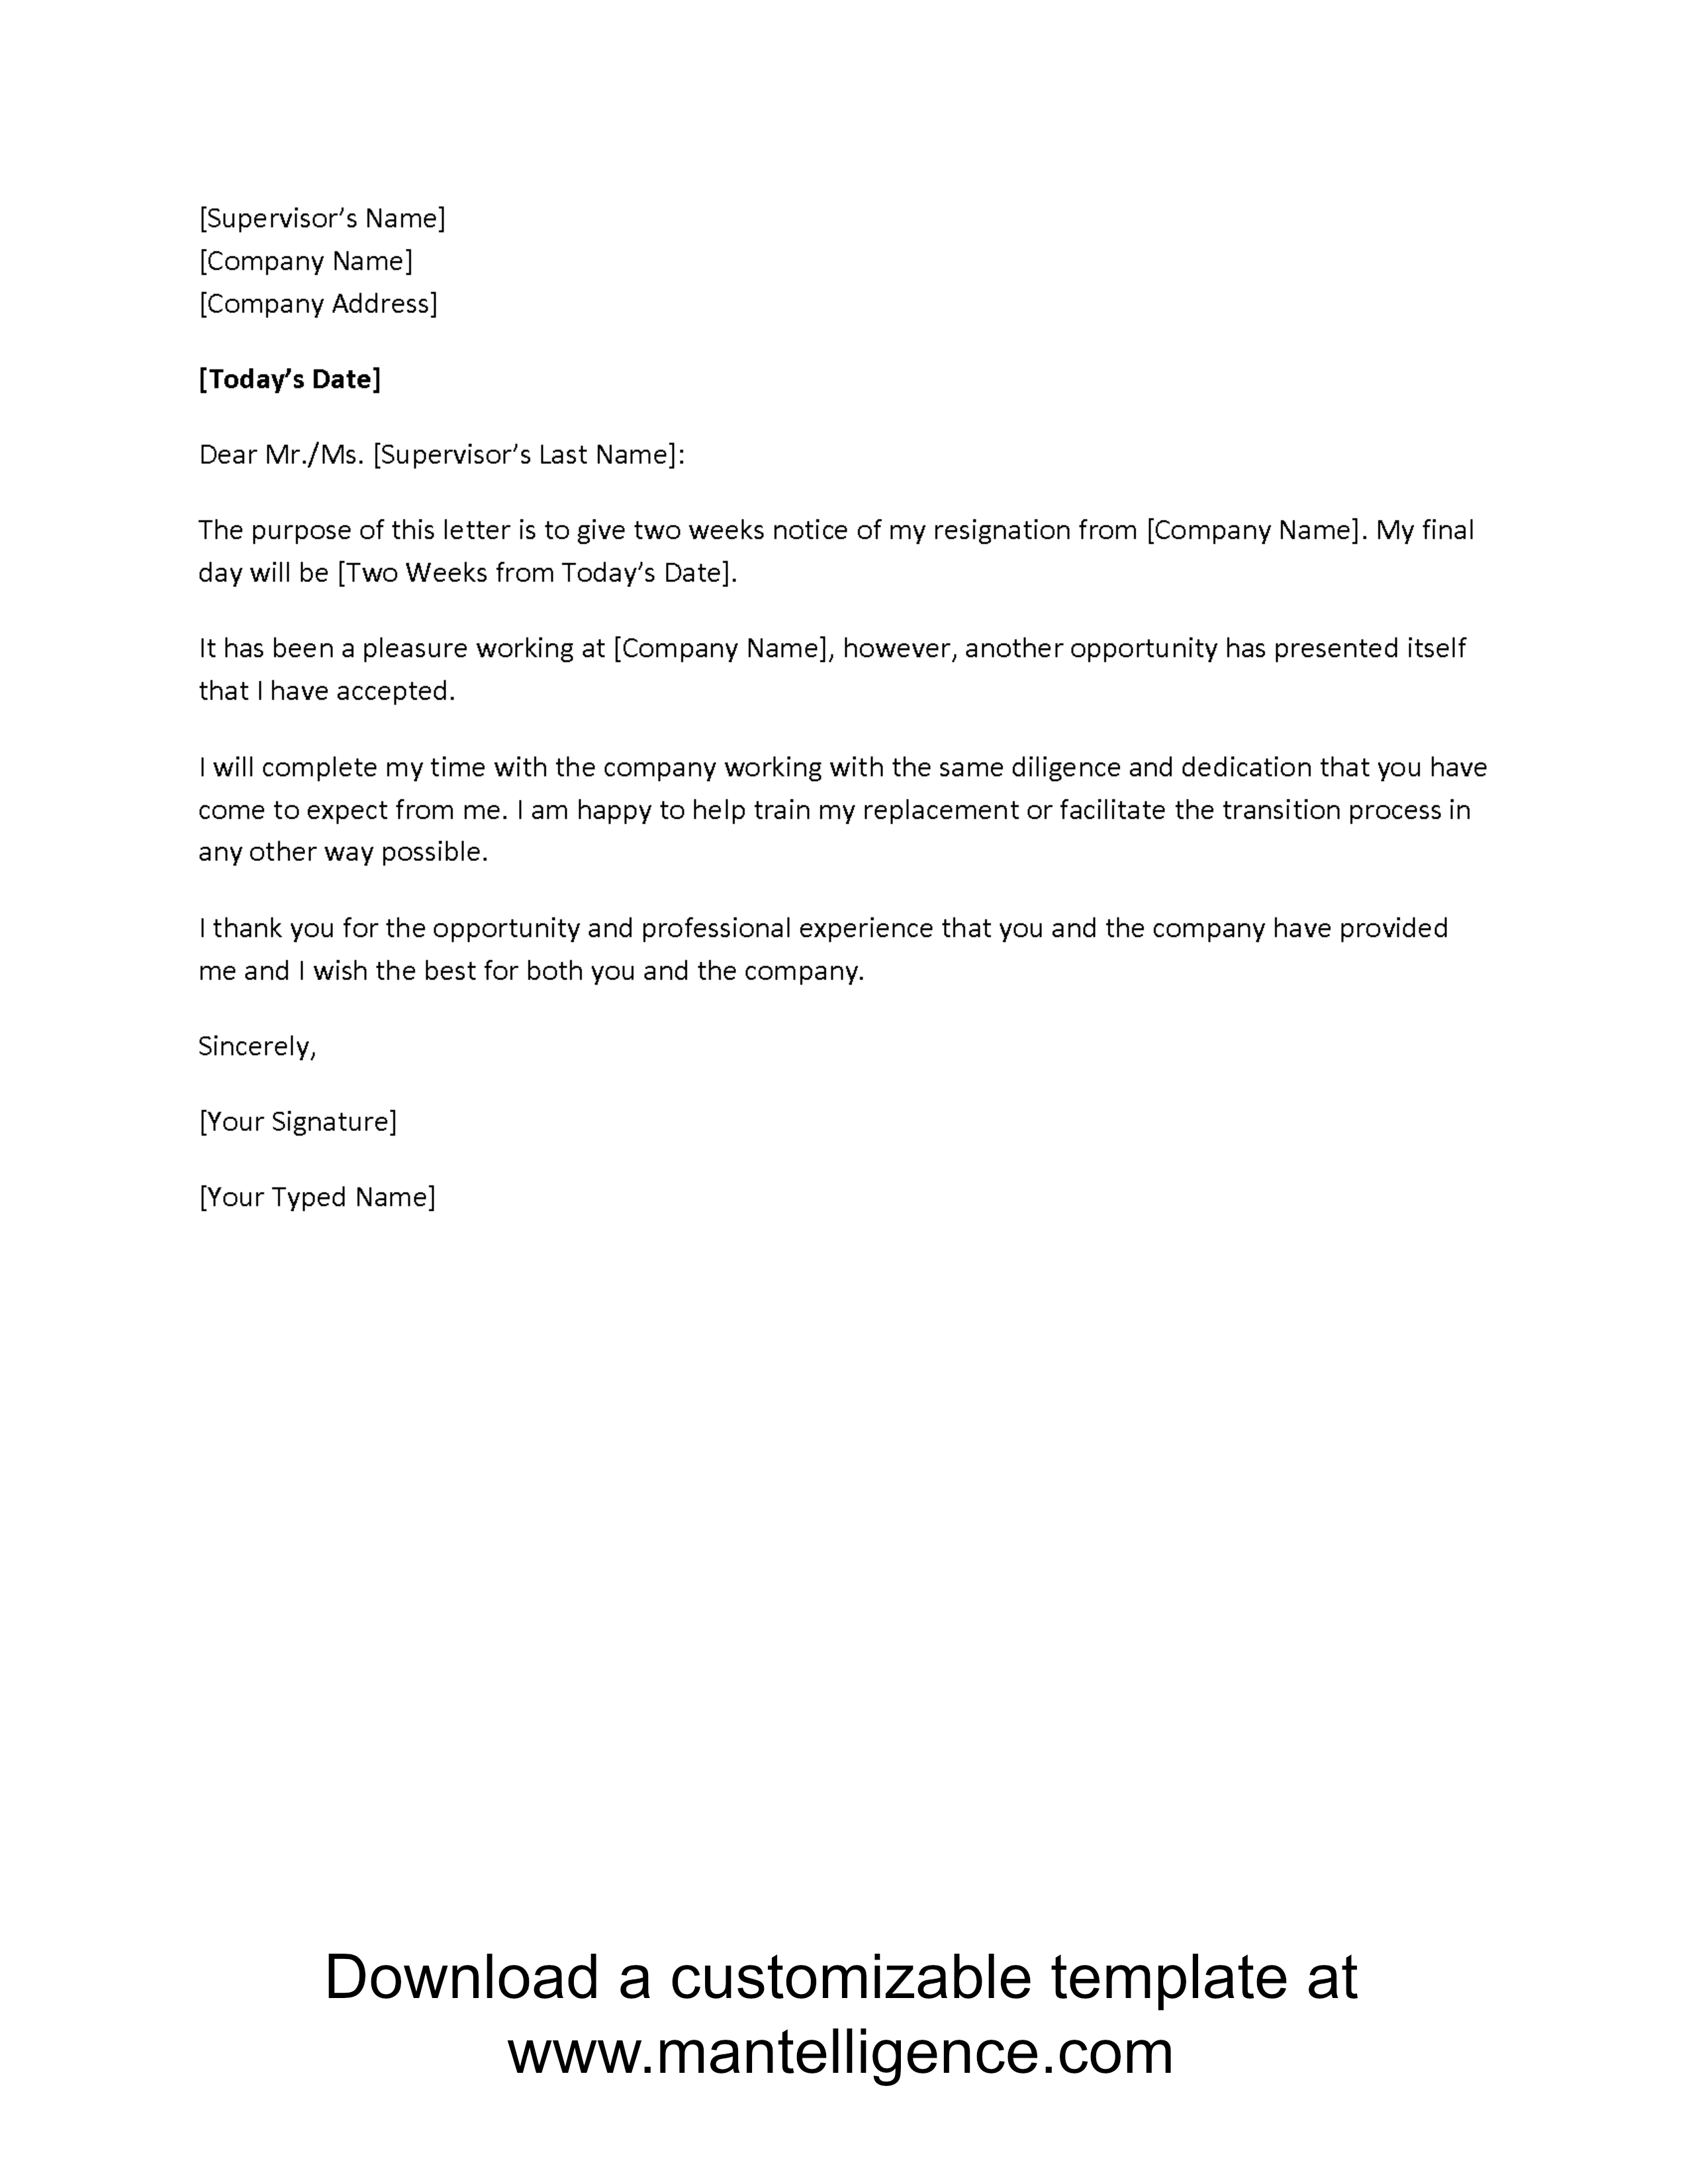 Resignation Letter Free Template Download - 3 Highly Professional Two Weeks Notice Letter Templates